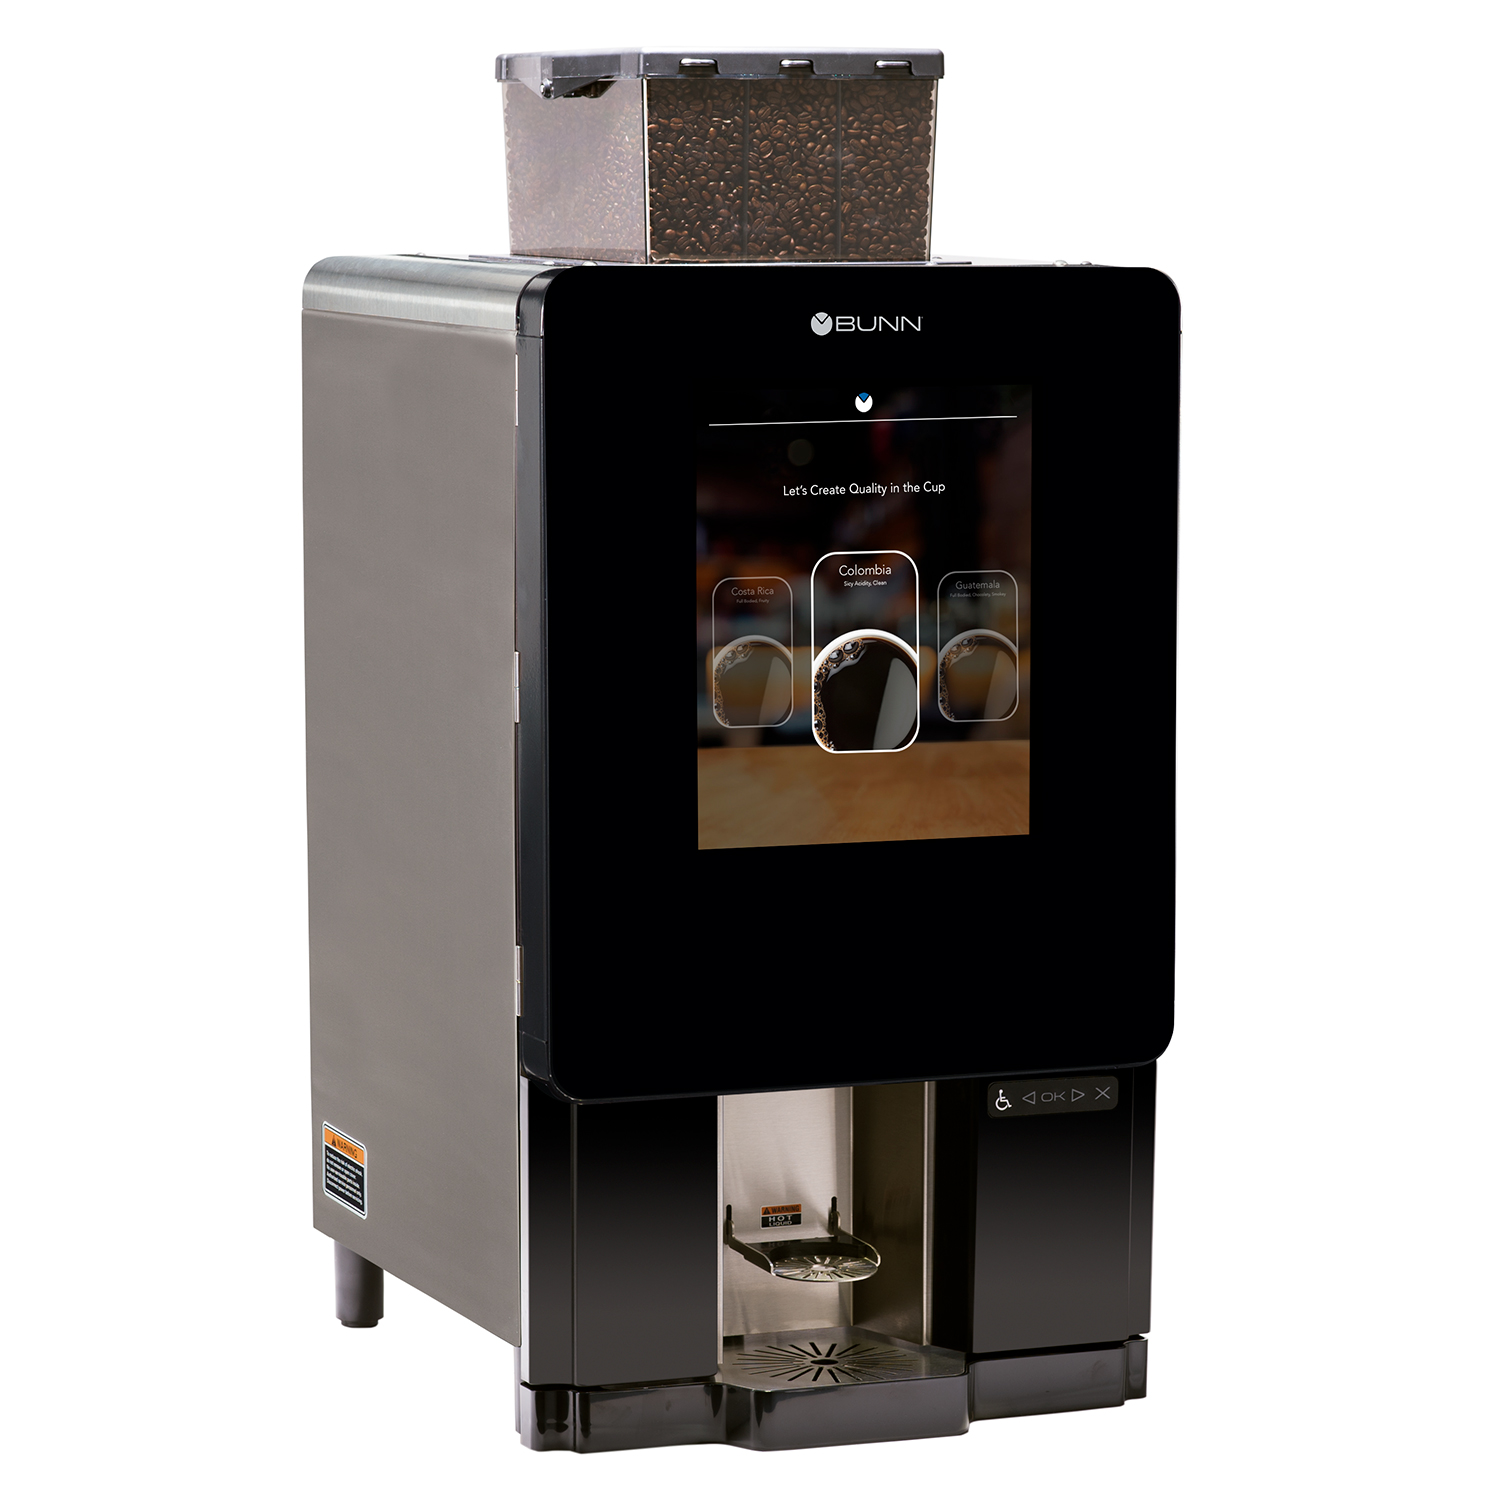 BUNN 44400.0201 coffee brewer, for single cup